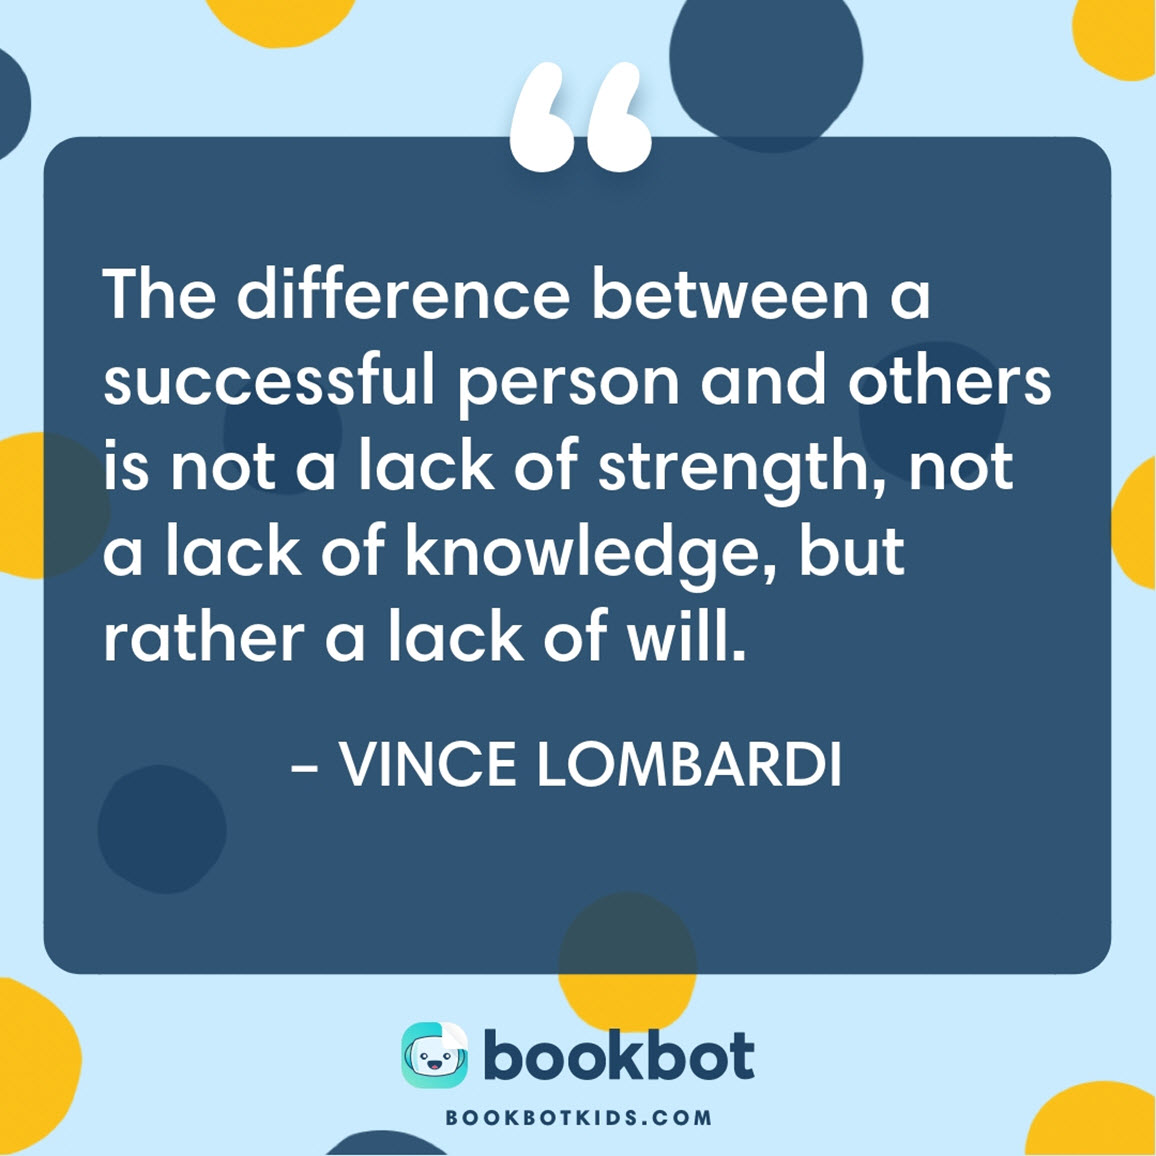 The difference between a successful person and others is not a lack of strength, not a lack of knowledge, but rather a lack of will. – Vince Lombardi